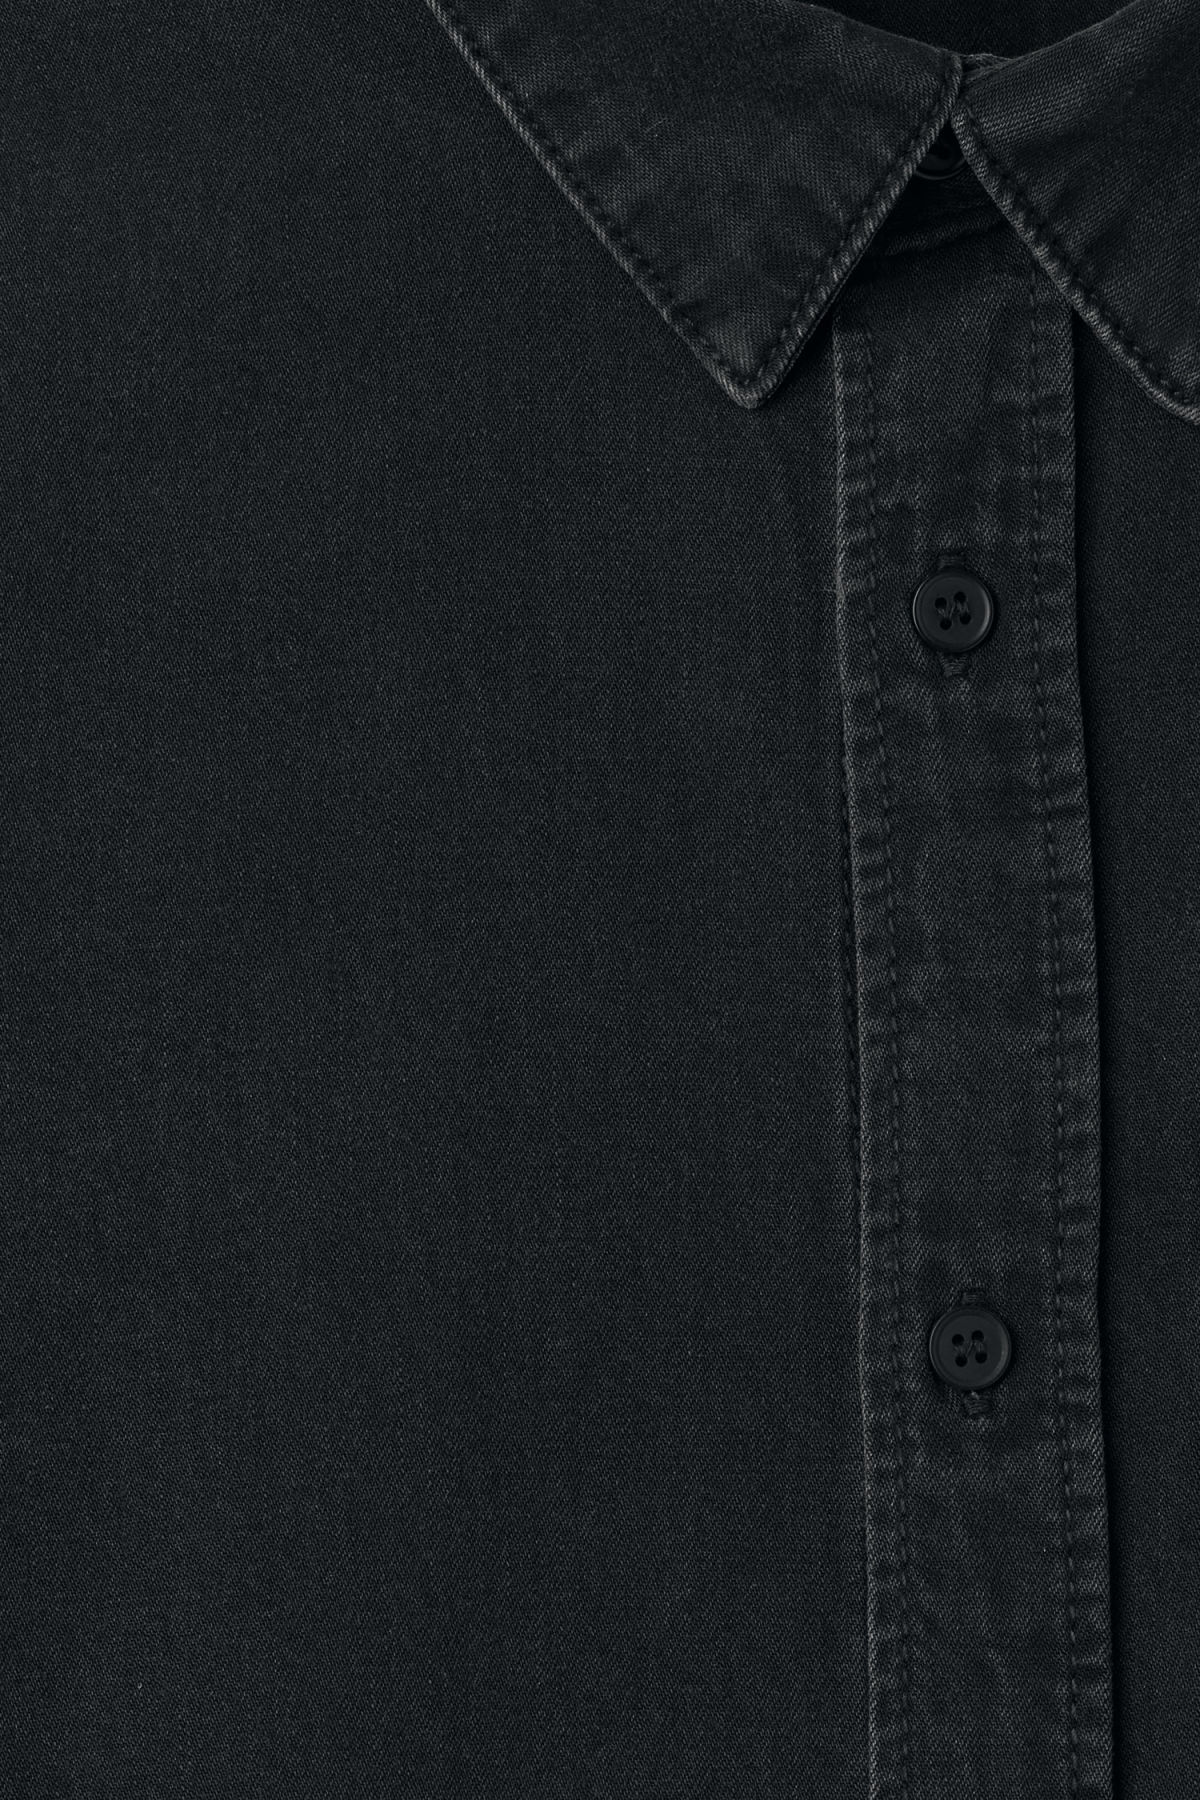 Detailed image of Weekday class shirt in black